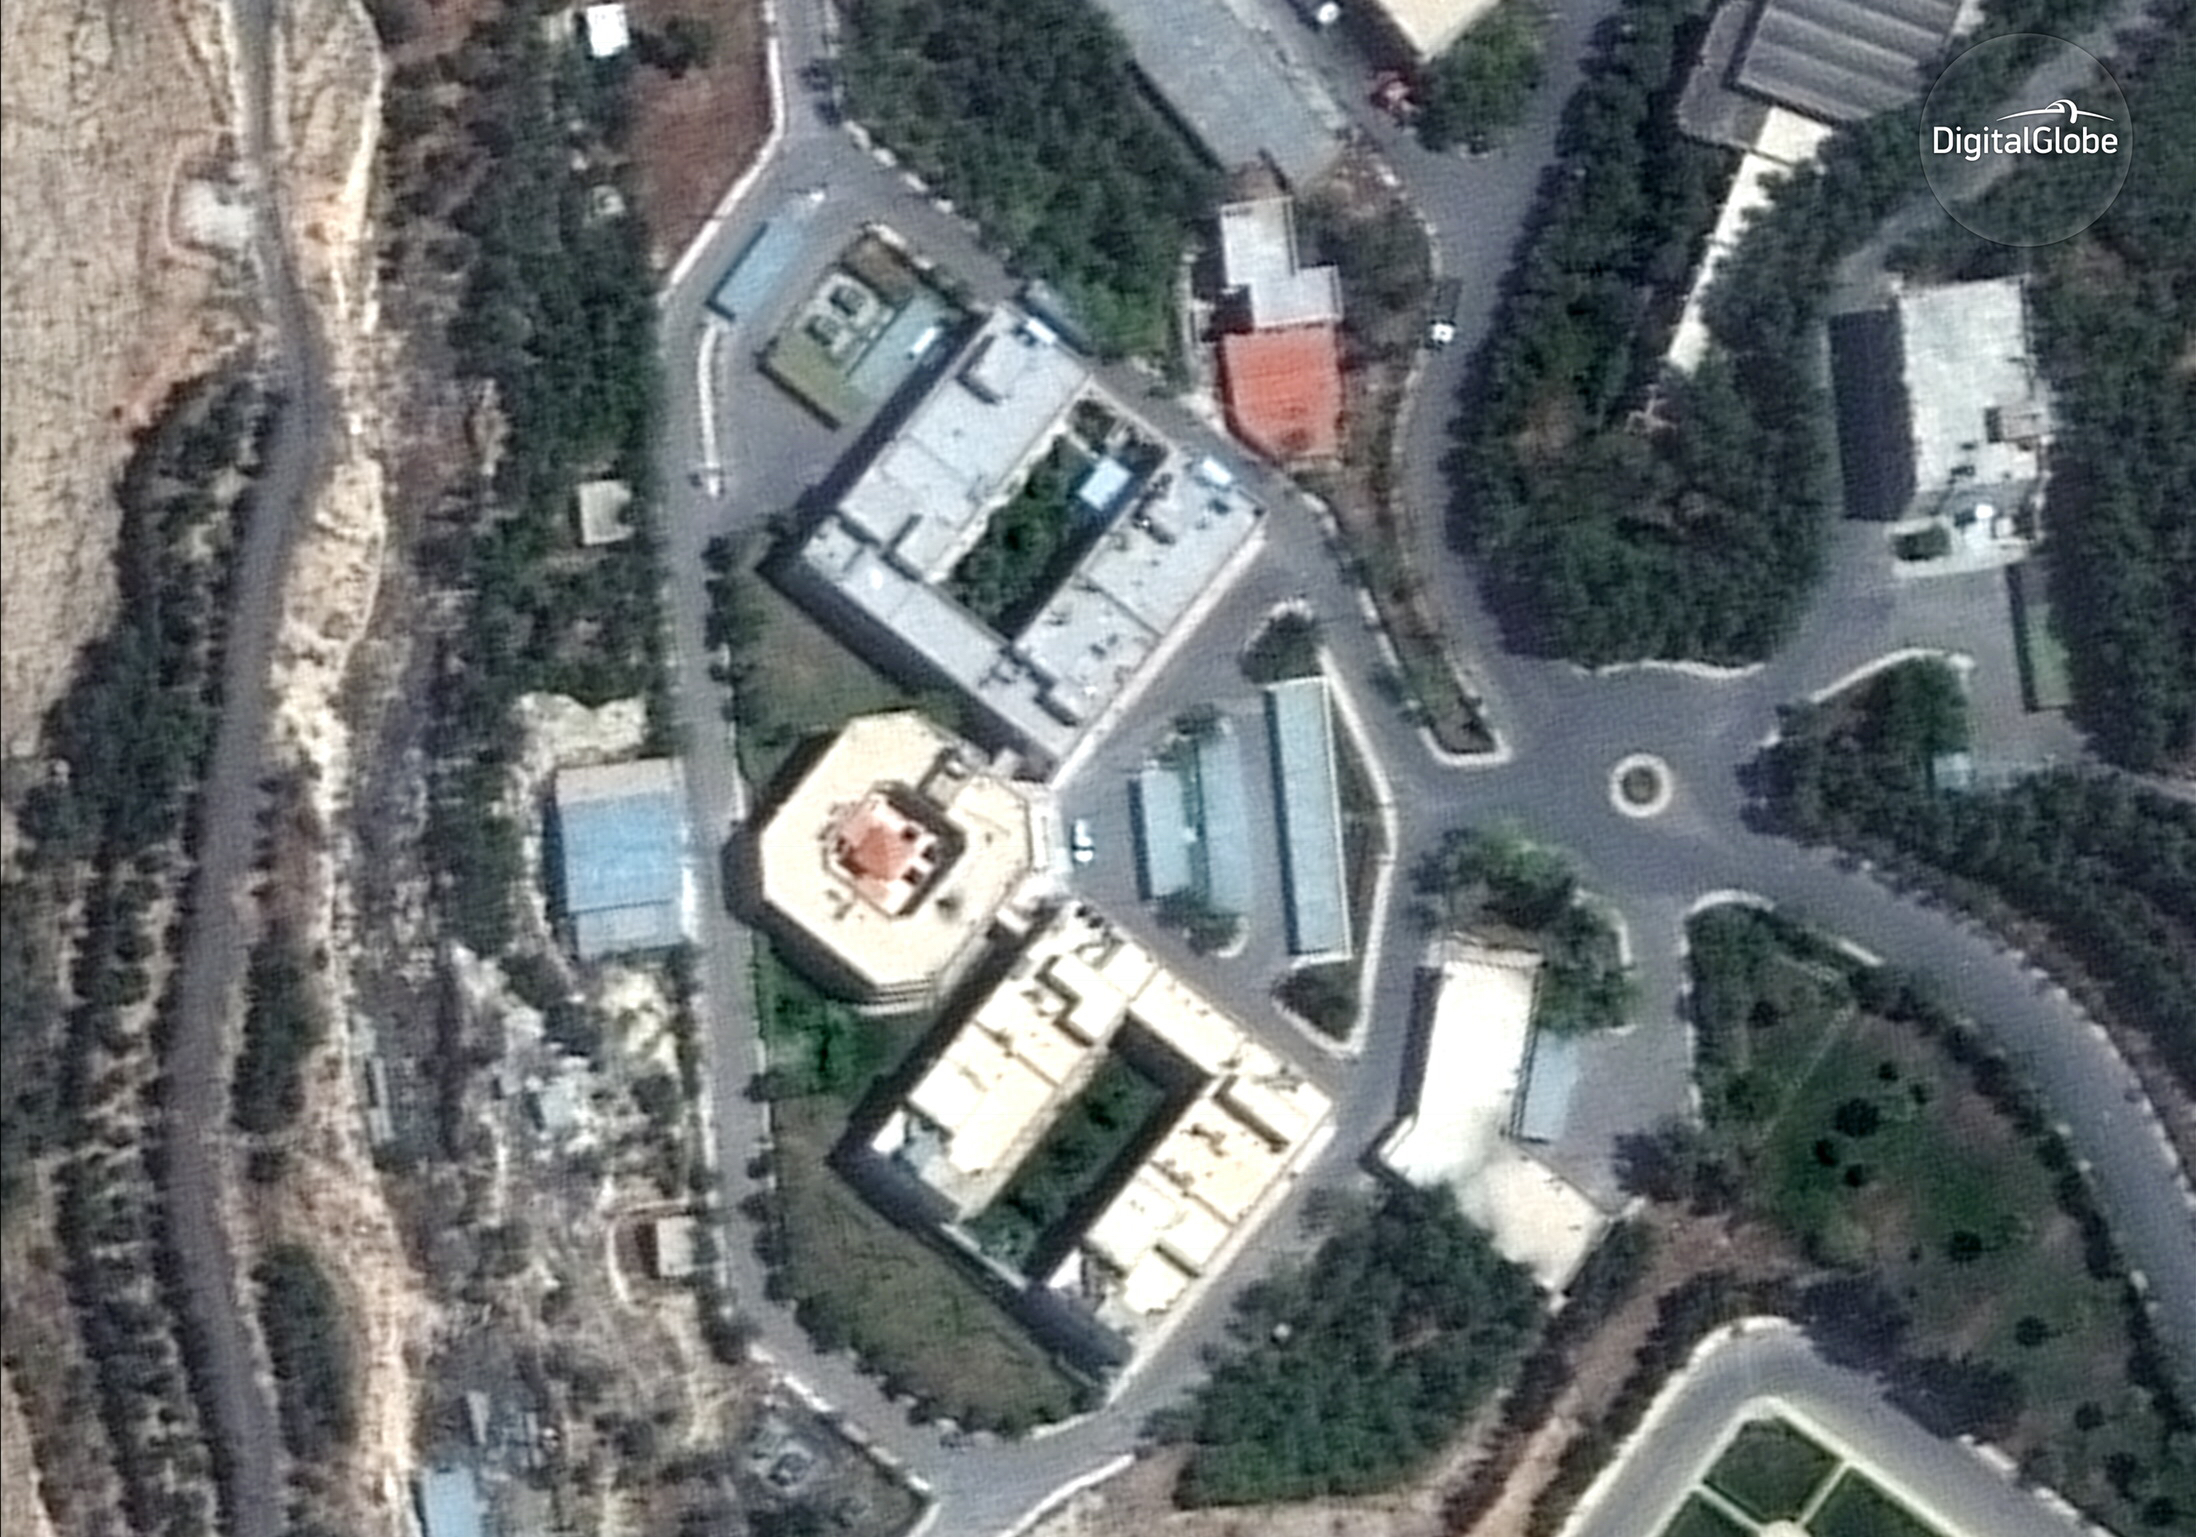 The Barzah Research and Development Center in Damascus, Syria, before it was struck by coalition forces on Saturday.